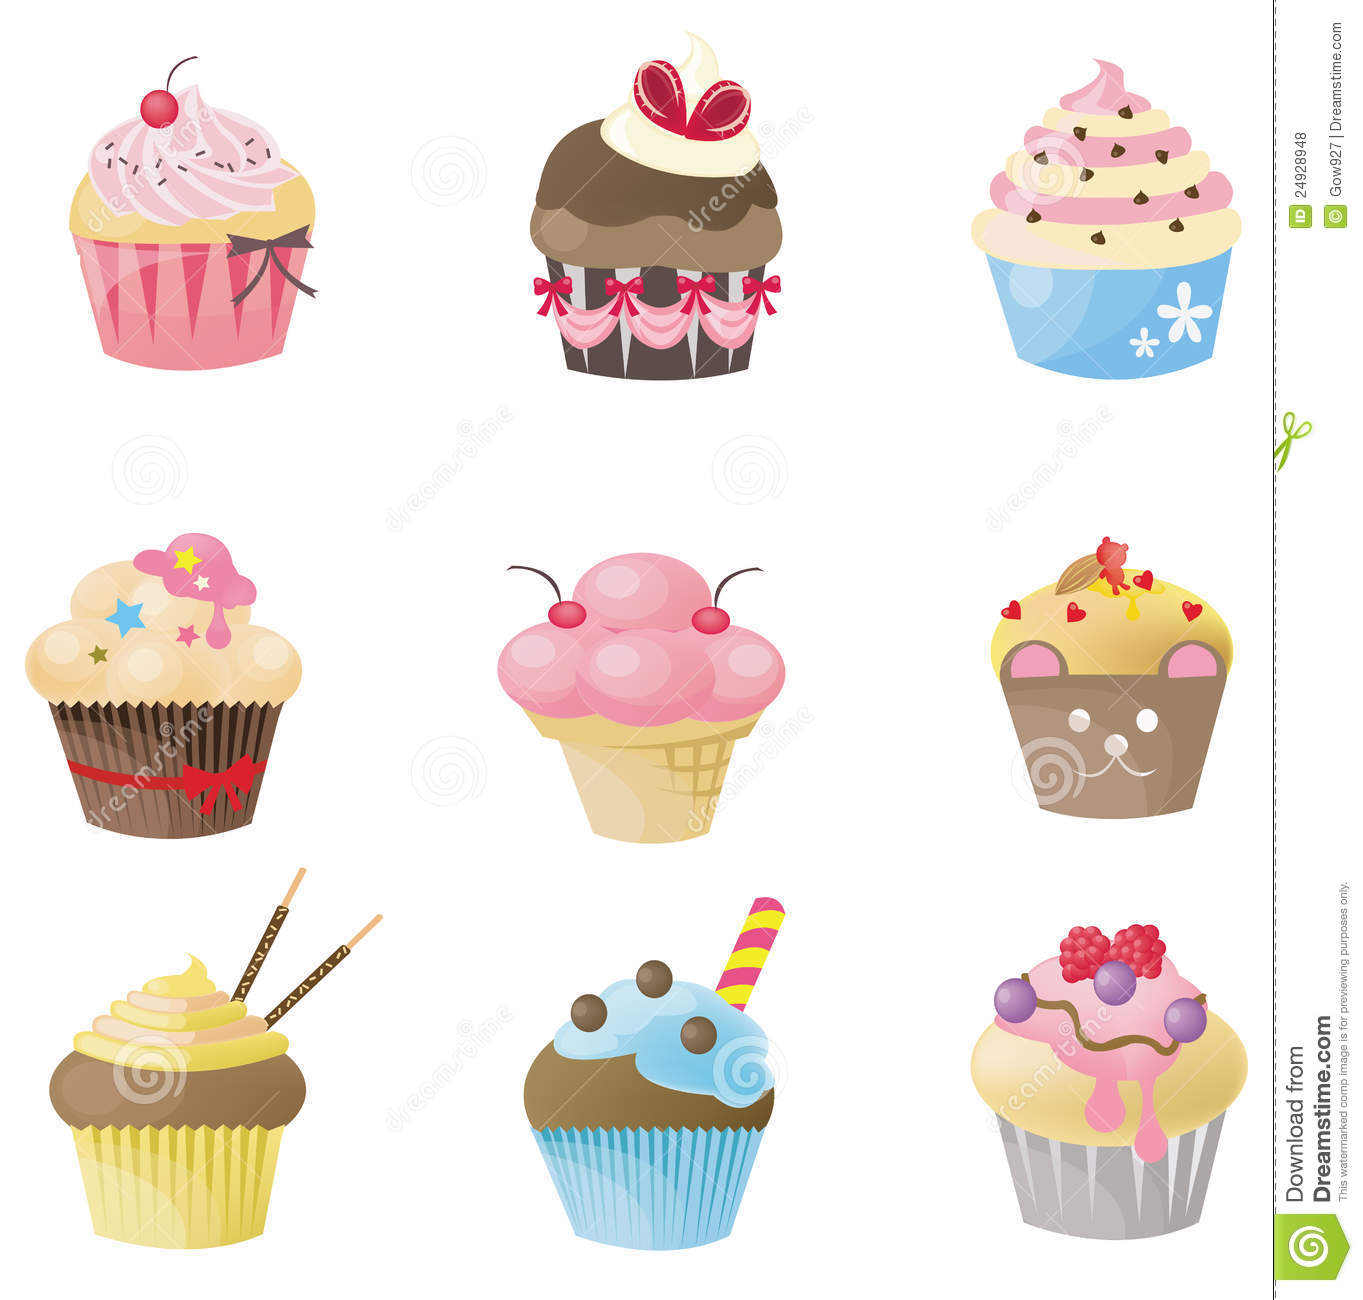 Cute Cupcake With 9 Different Look Royalty Free Stock Photos - Image ...